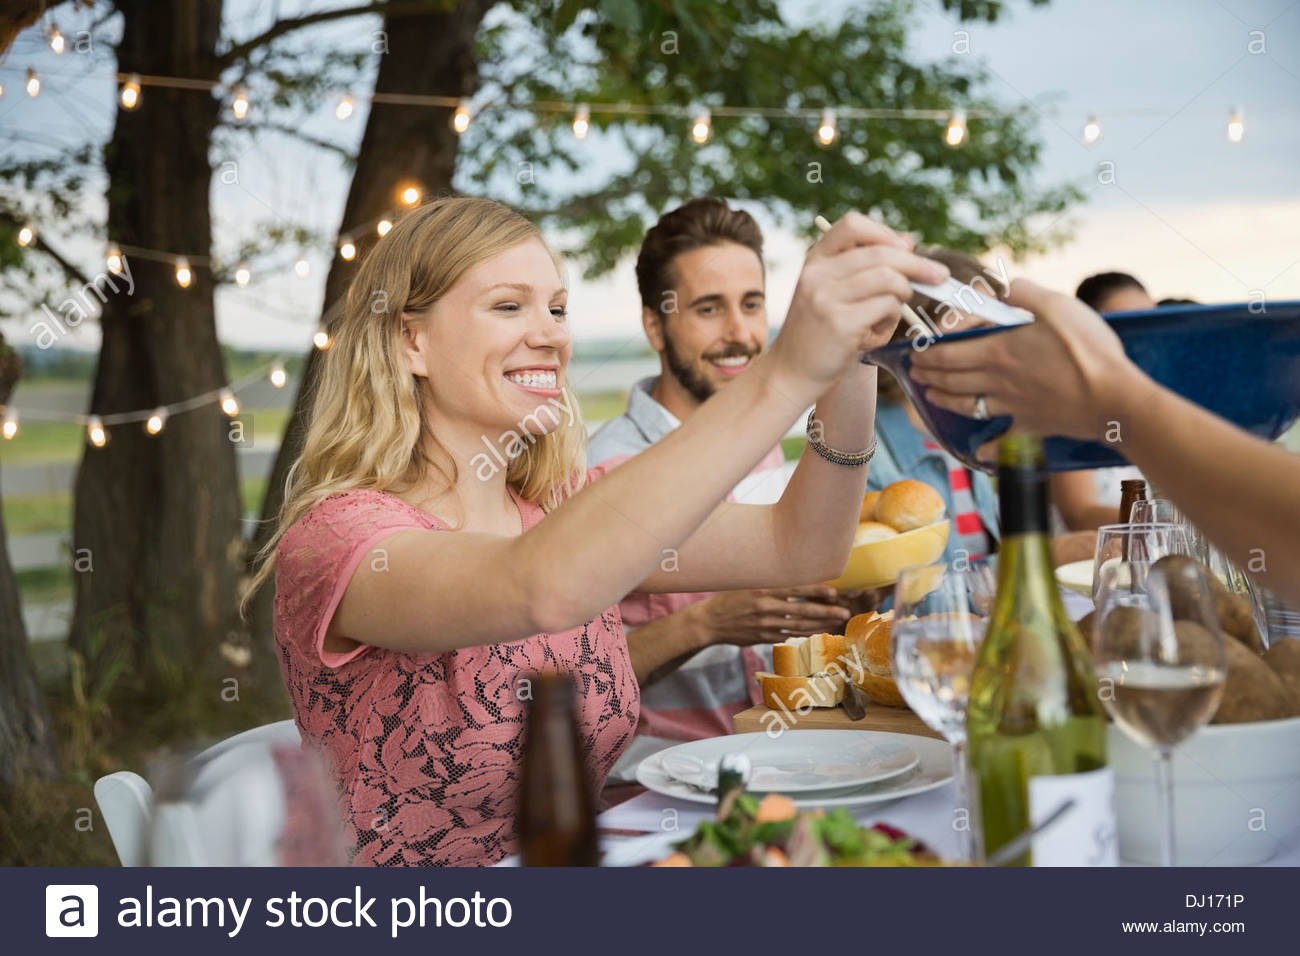 Friends sitting together at an outdoor dinner party - Stock Image